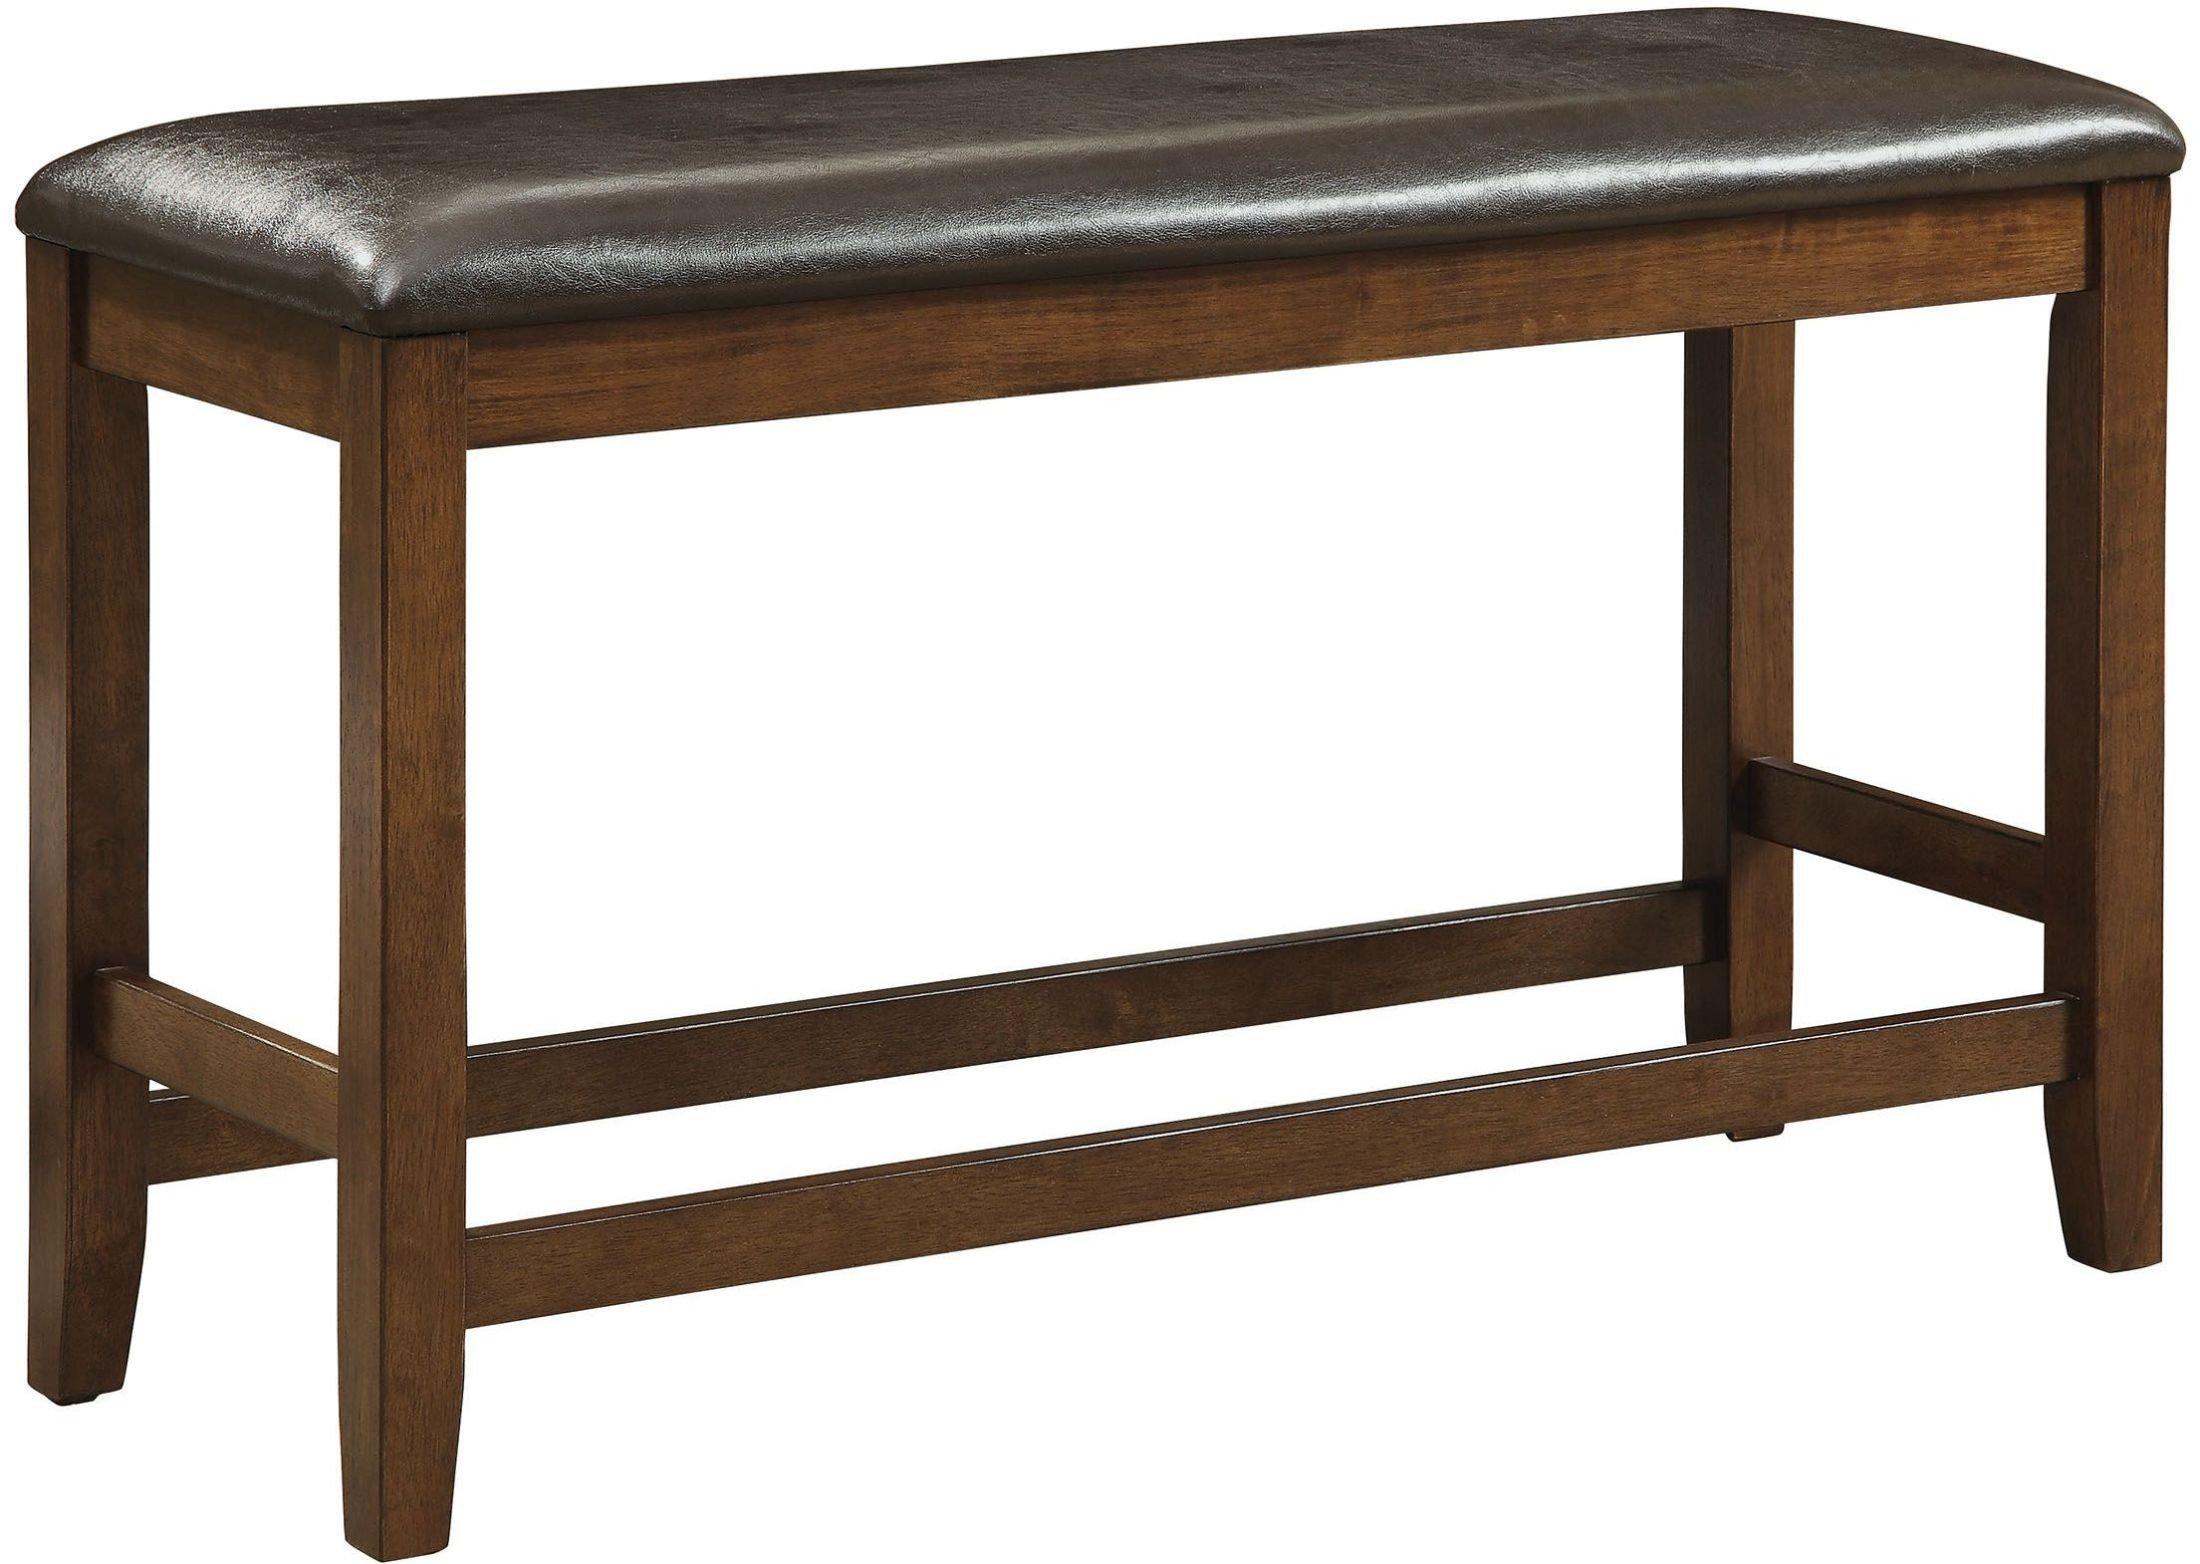 Brockton ii rustic oak counter height bench from furniture Oak bench